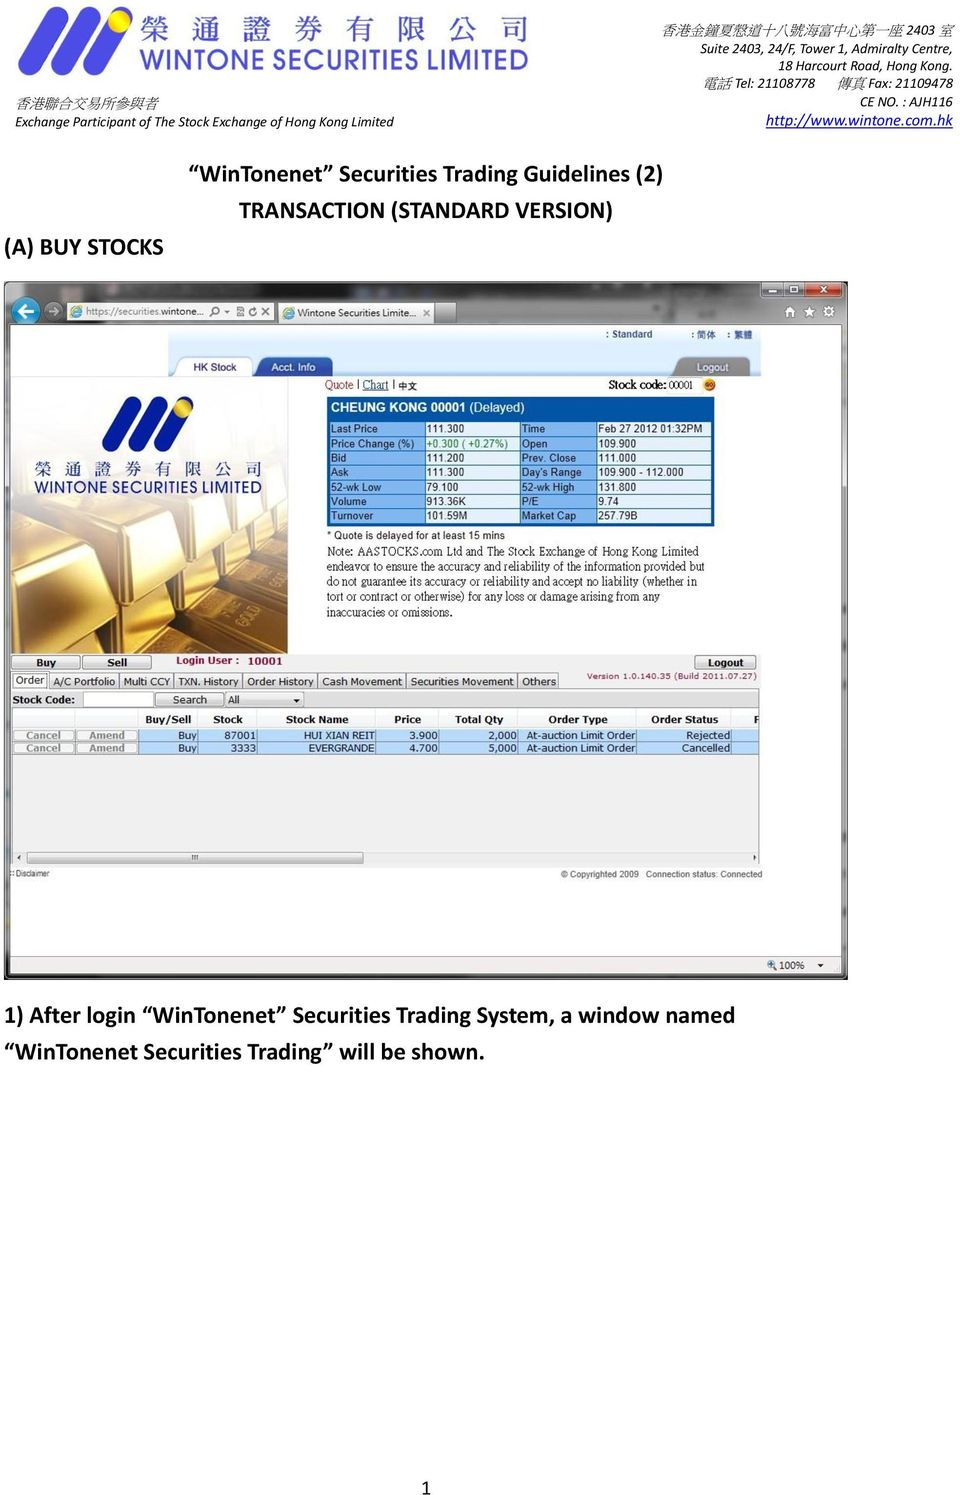 After login WinTonenet Securities Trading System, a